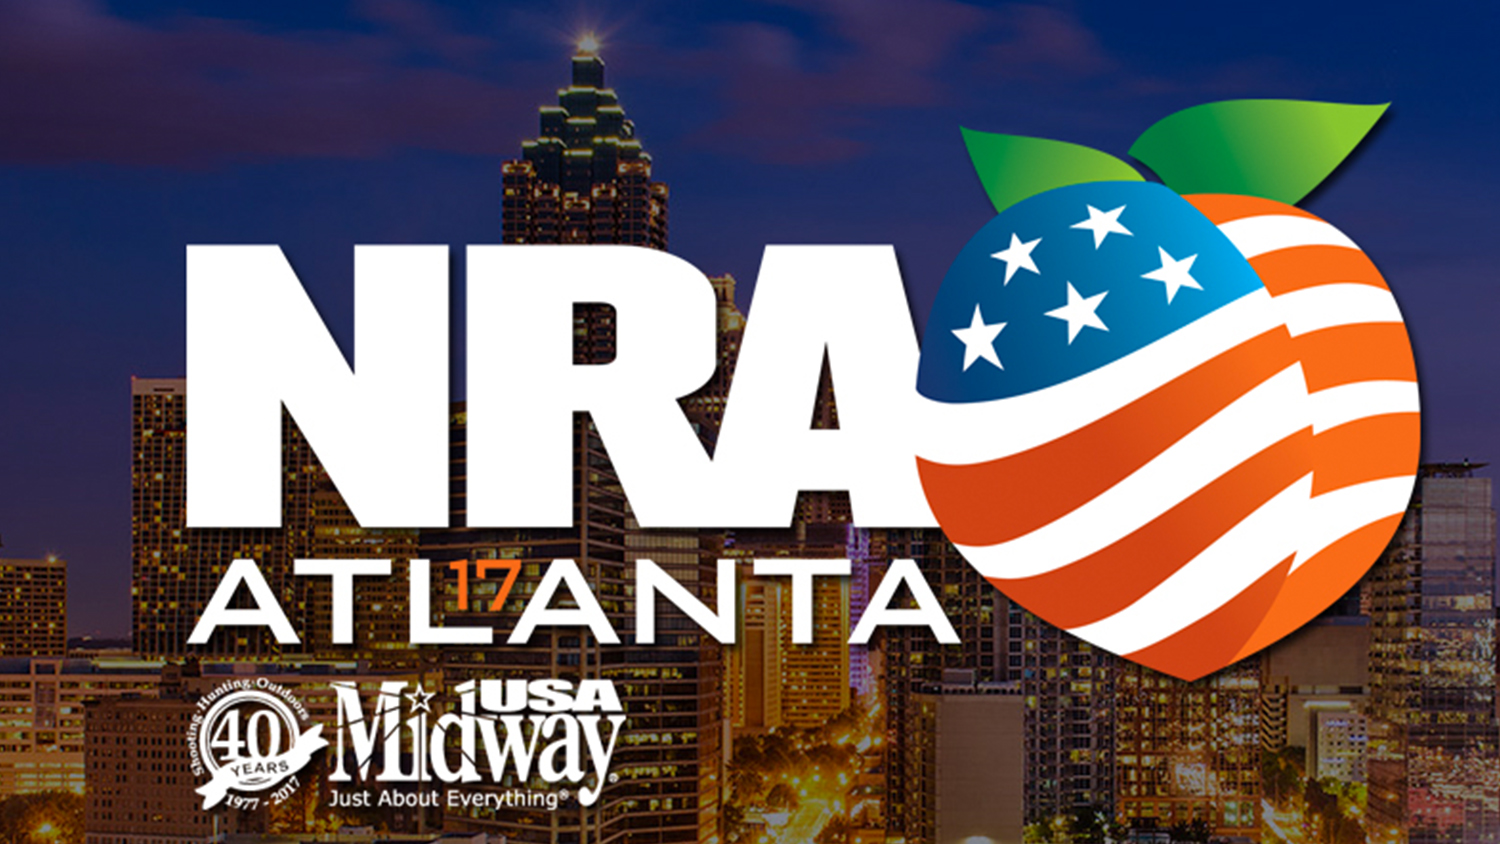 Get your tickets for the The 146th NRA Annual Meetings and Exhibits in Atlanta, Georgia